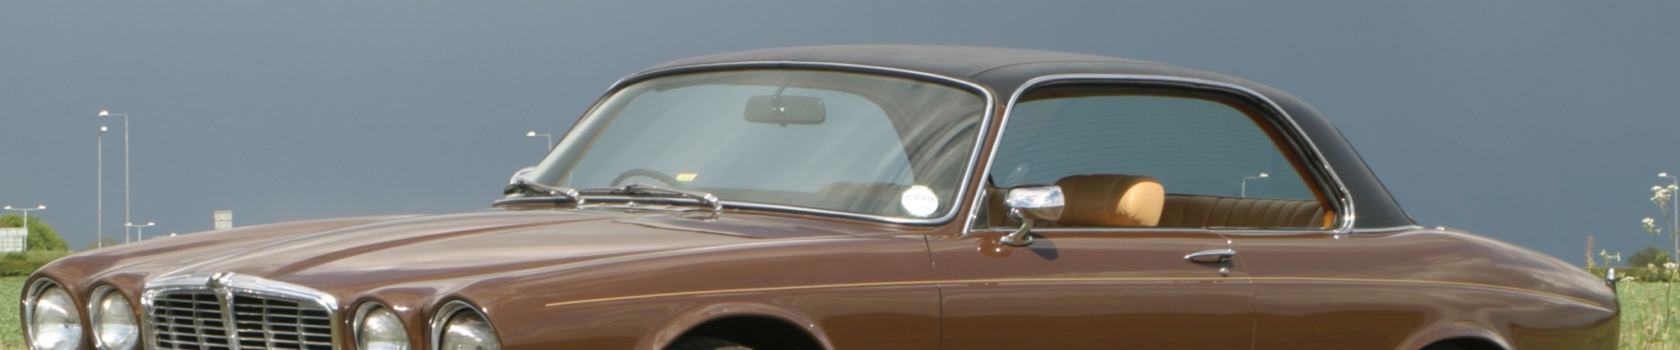 Jaguar Xj6 C Coupe Main